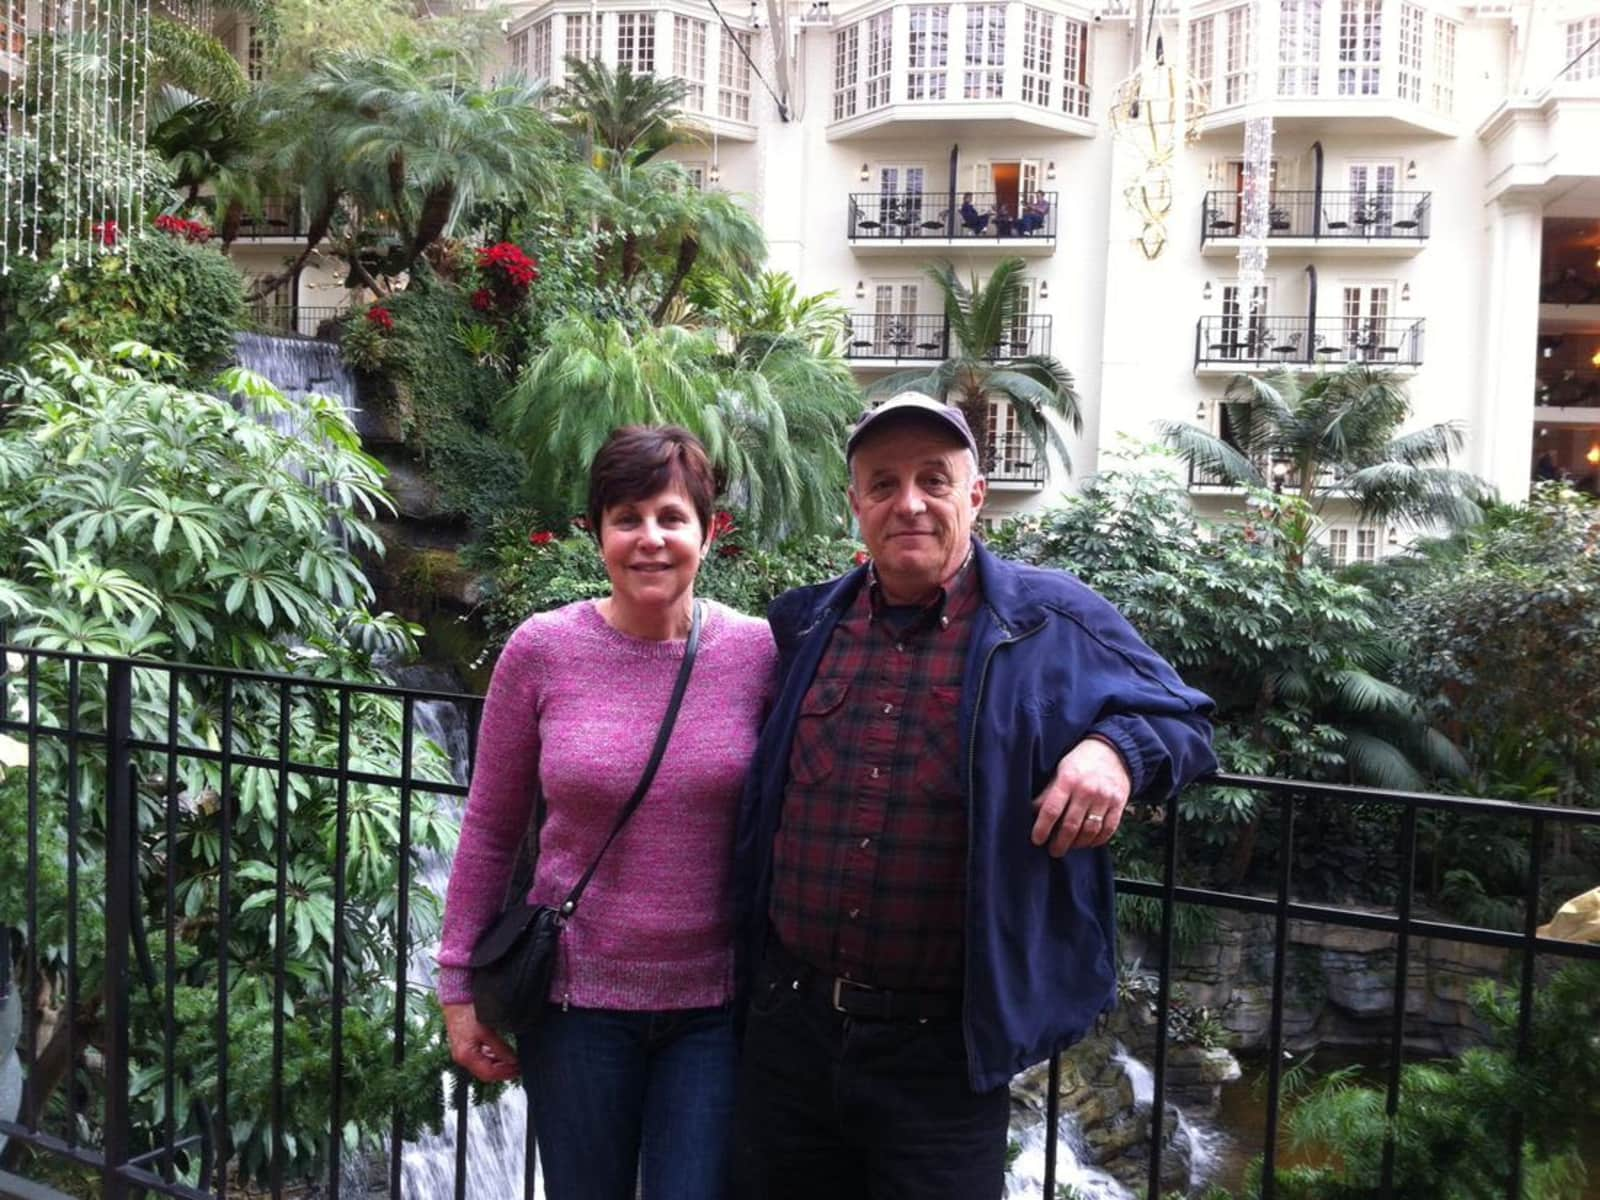 Sandy & Jim from Lindsay, Ontario, Canada